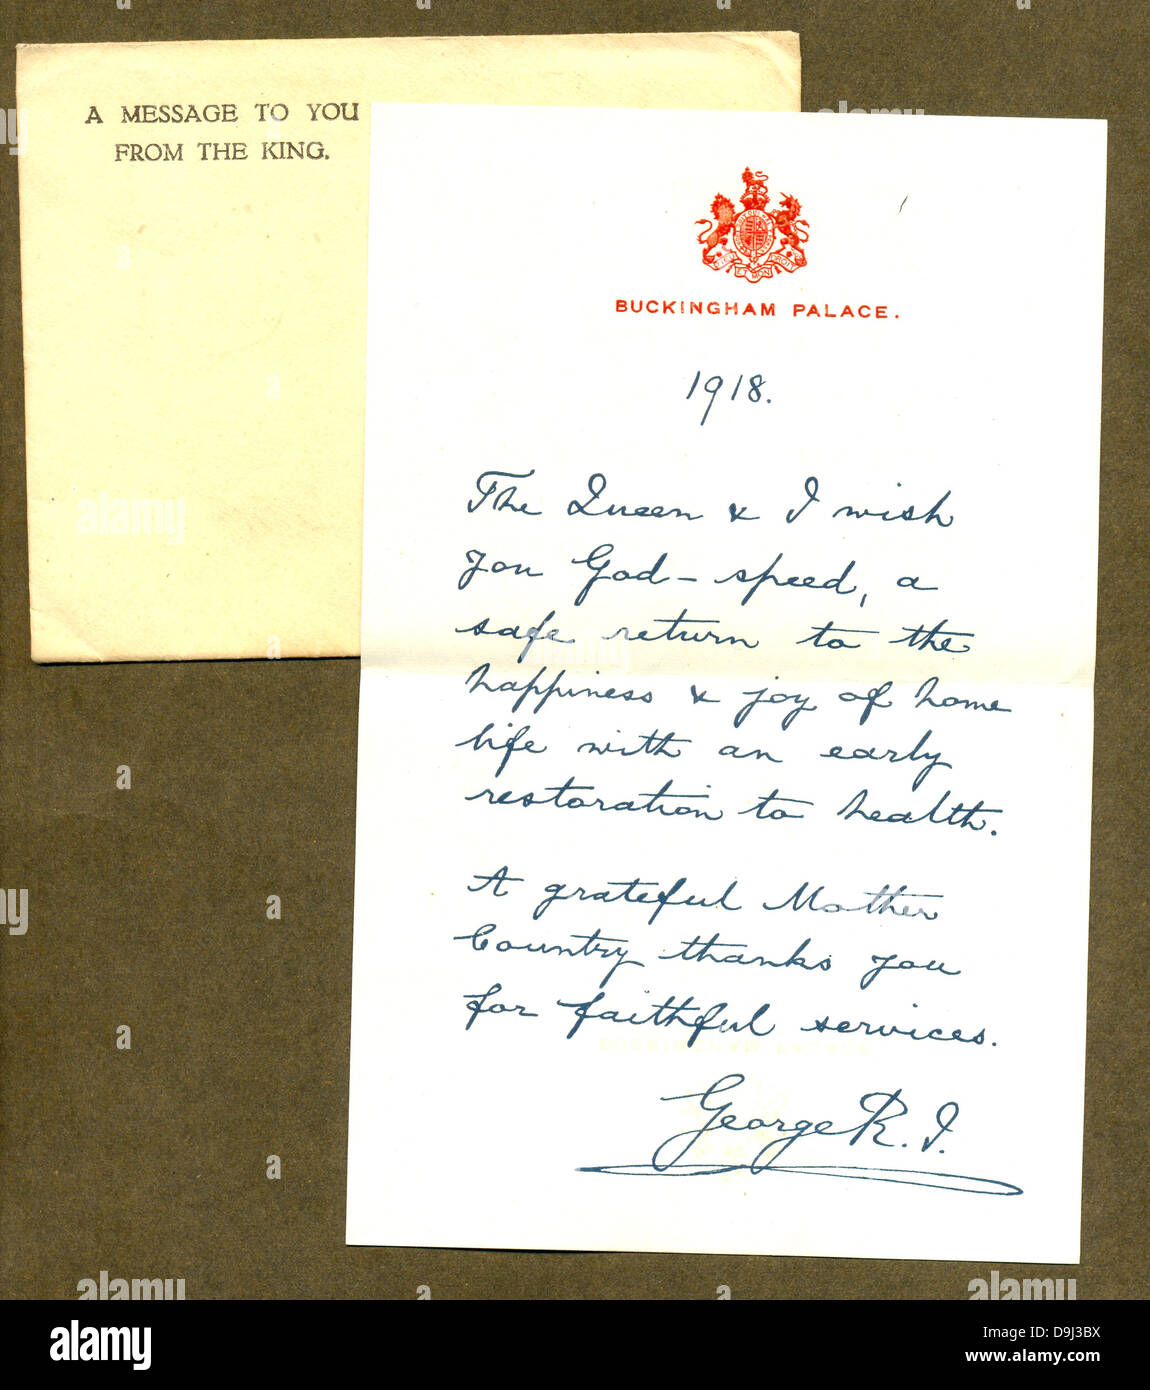 World War One letter of thanks and envelope to serving personnel from King George V. - Stock Image